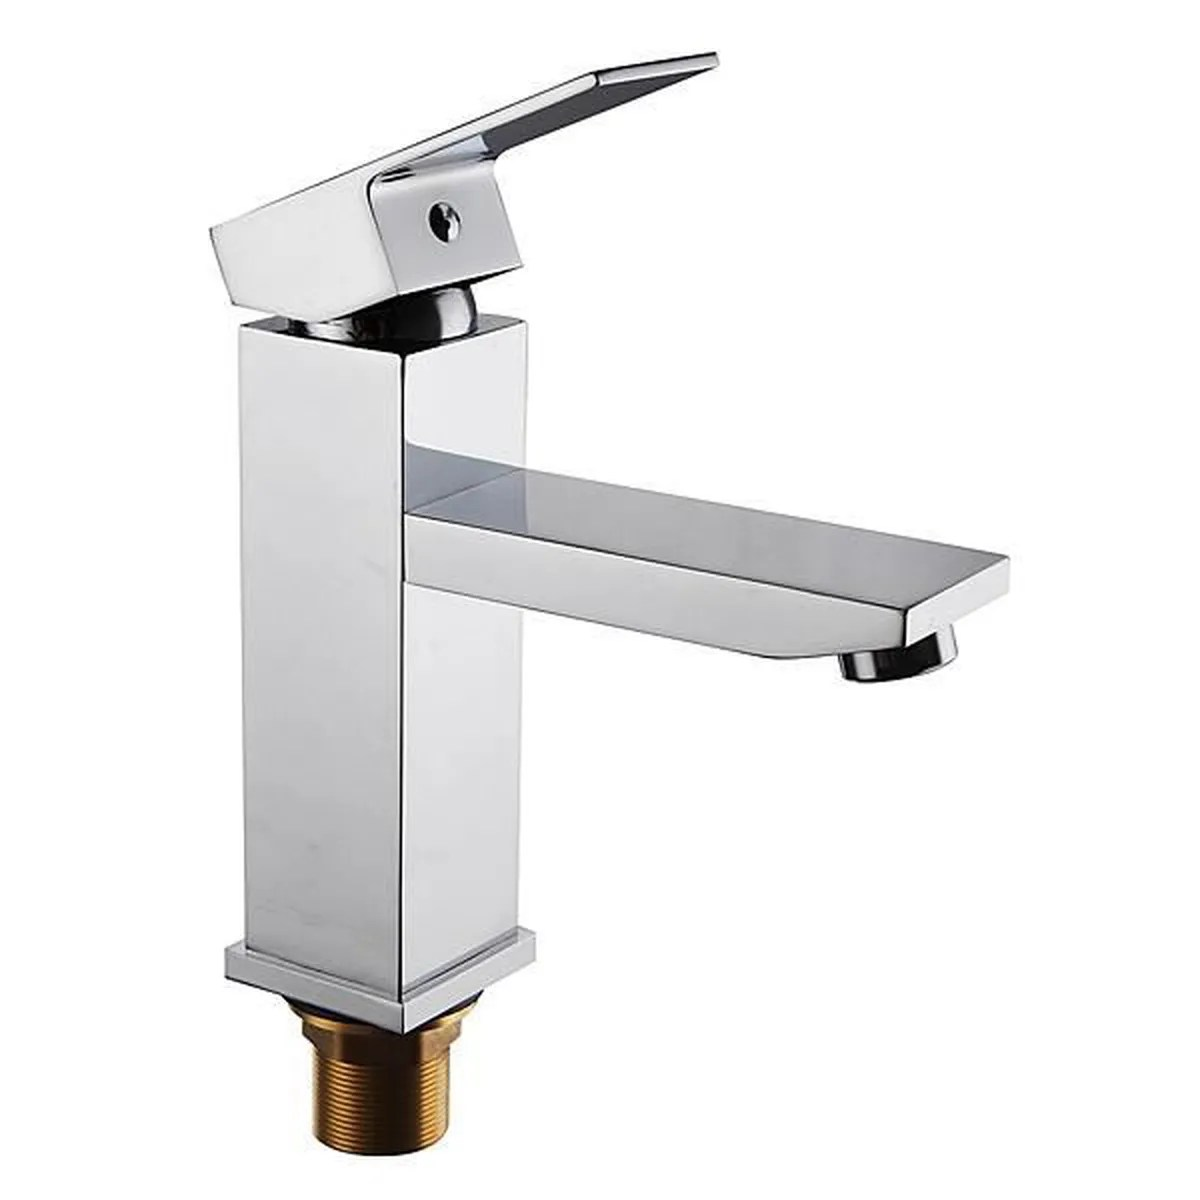 Evier Sdb Robinet évier Lavabo Laiton Cascade Mixer Tap Cuis